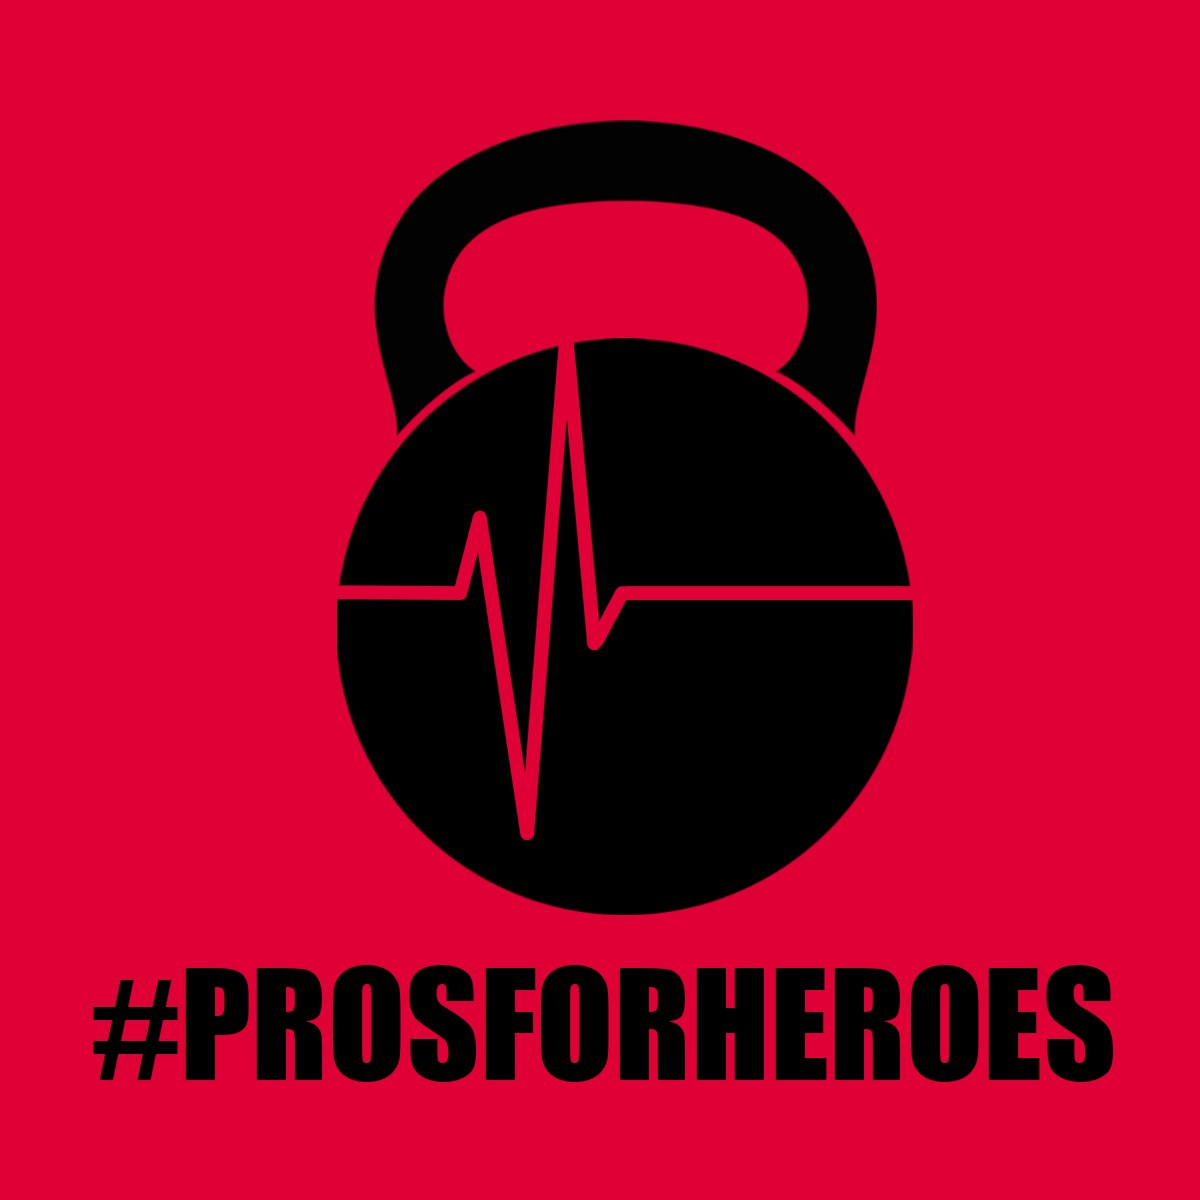 Great work being done by Ryan Zimmerman, @HeatherZiMS and @ziMSFoundation. Check out @prosforheroes https://t.co/CM06lEyMBo https://t.co/bFhWaM6fn9